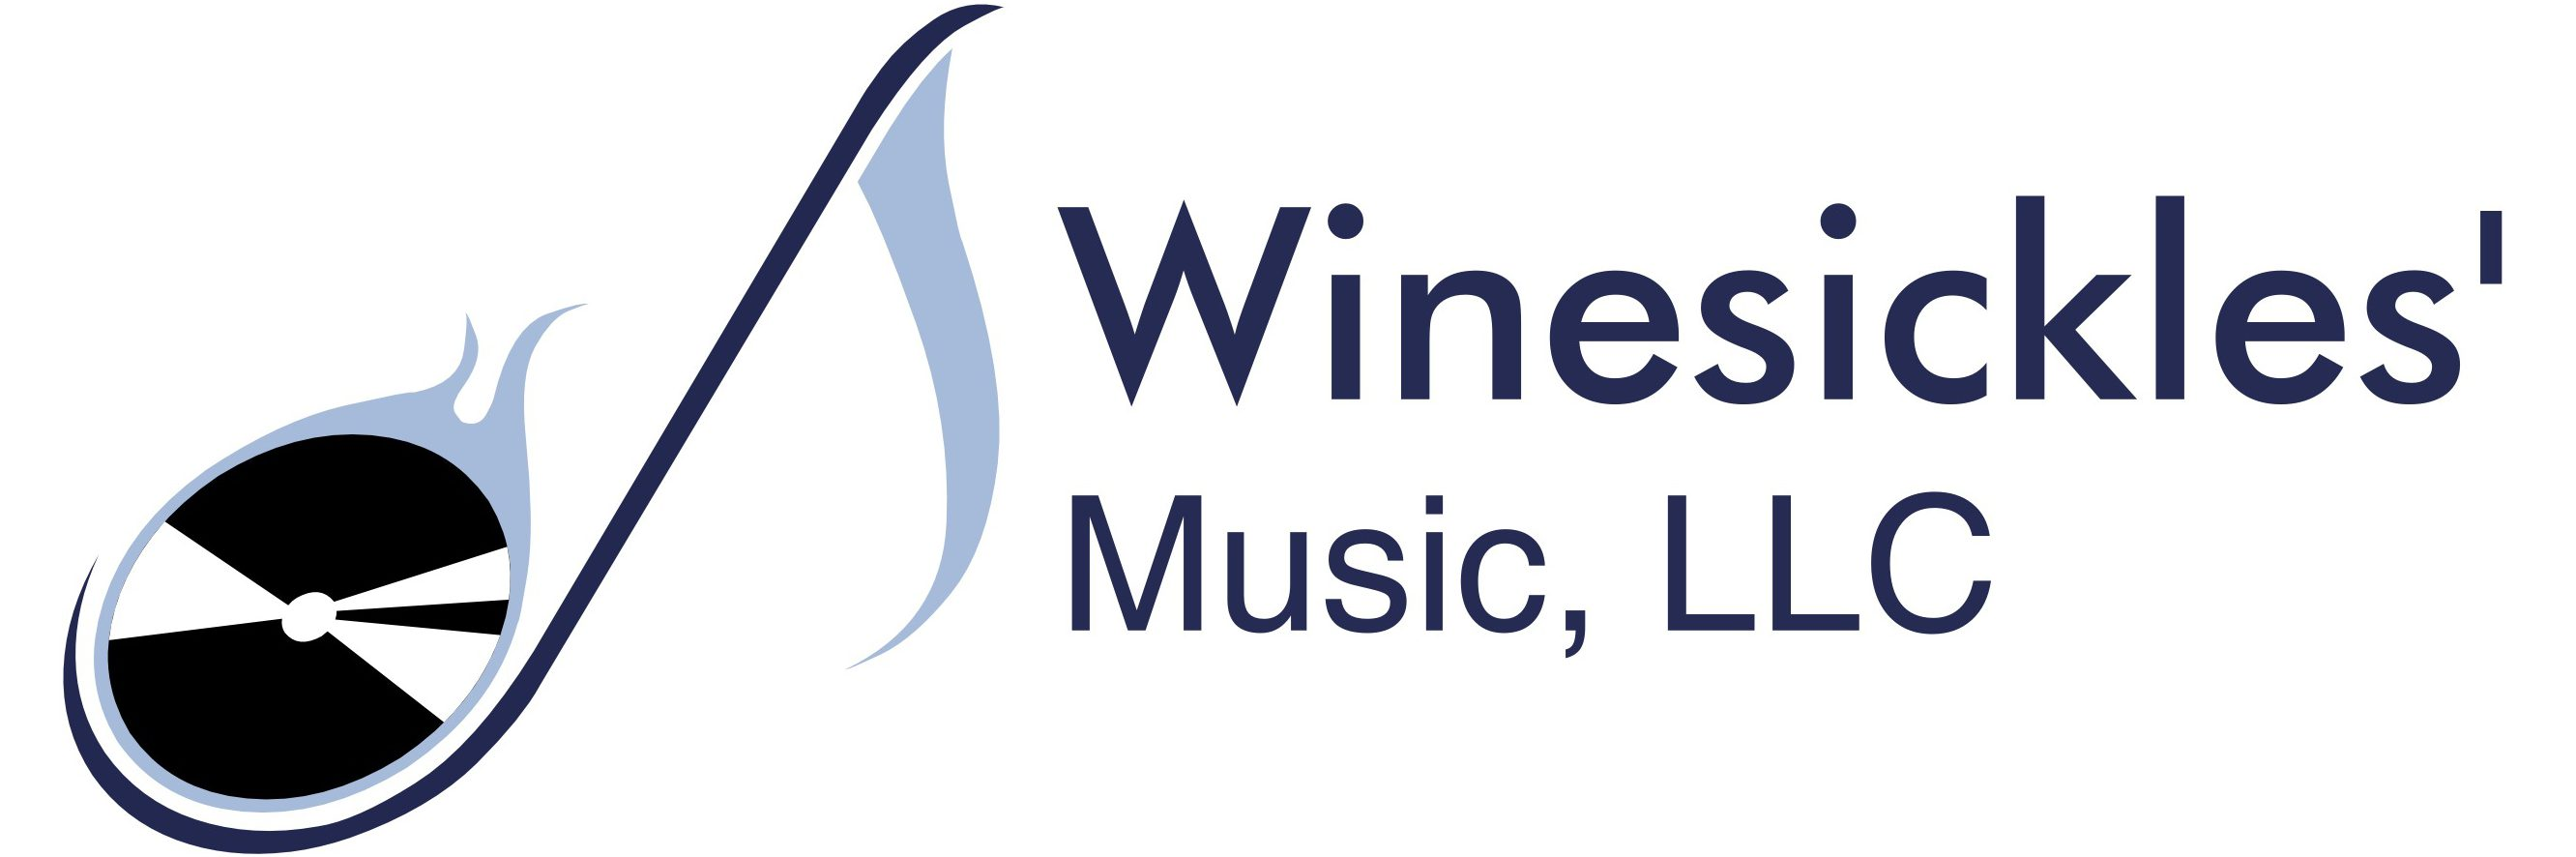 Winesickles Music